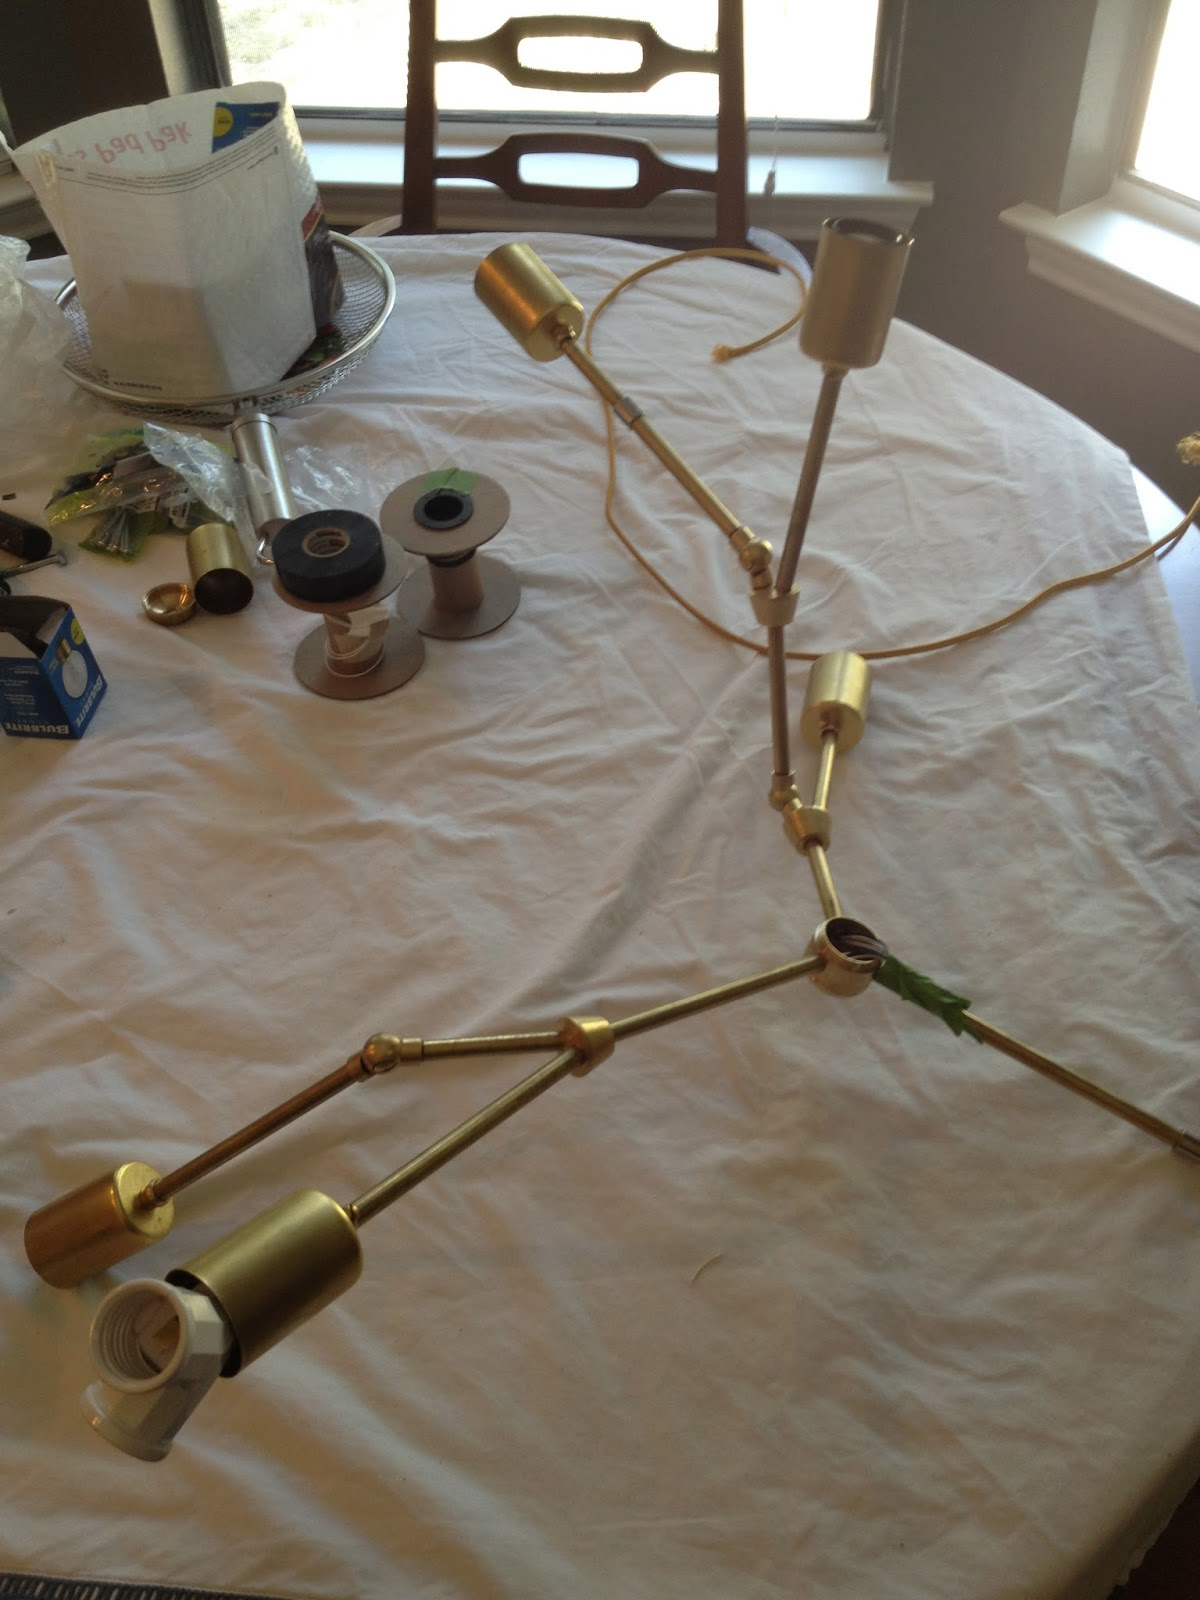 Diy brass lindsay adelman chandelier part three lindsey does diy brass lindsay adelman chandelier part three arubaitofo Choice Image